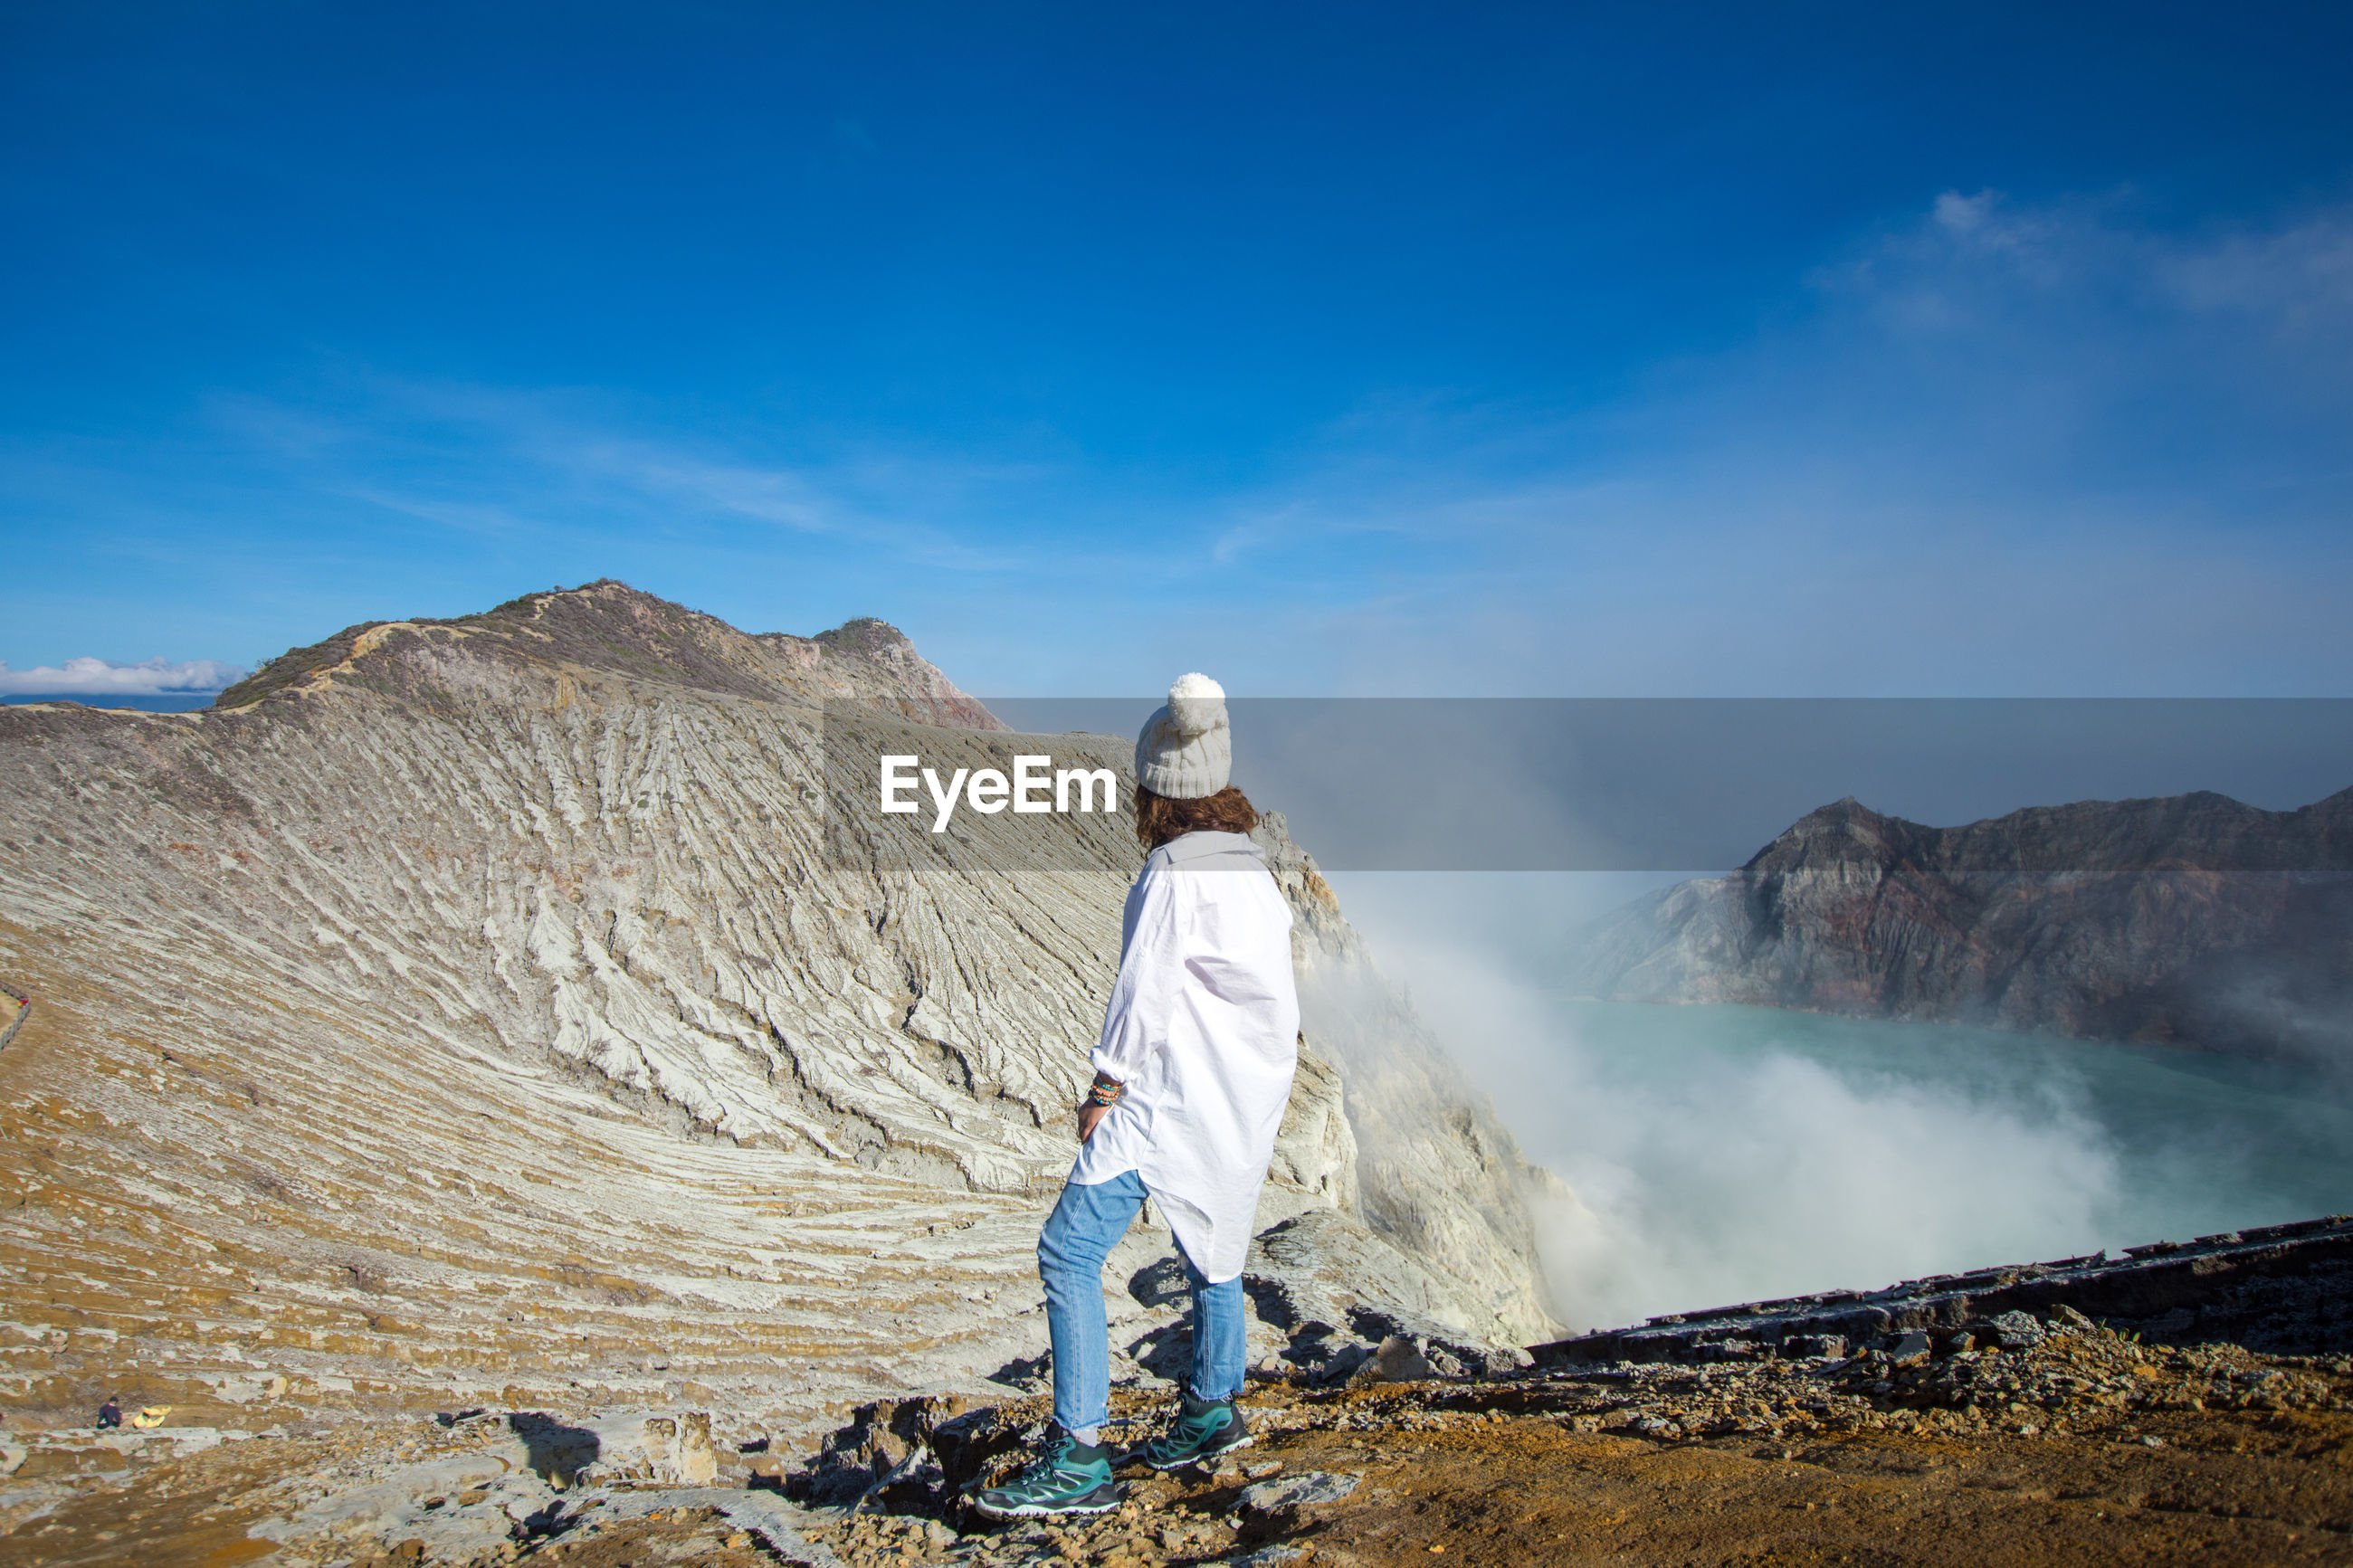 Woman looking at view of hot spring standing on mountain against sky